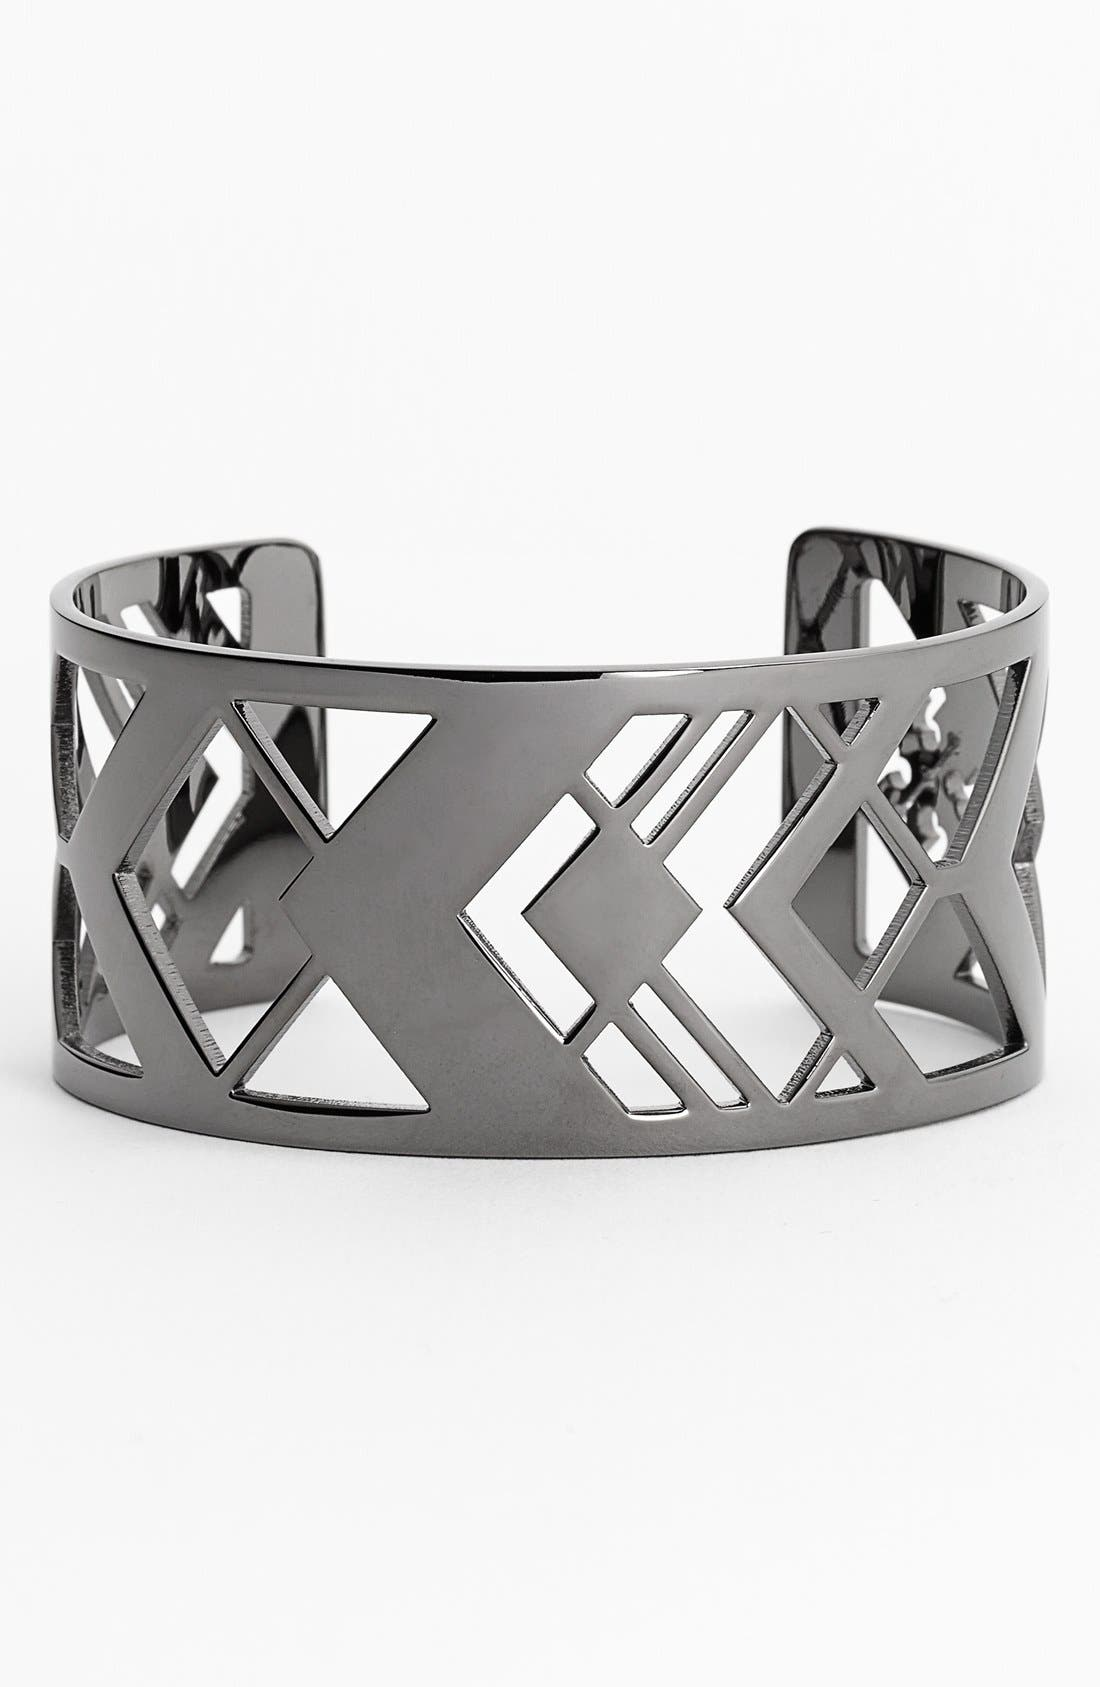 Main Image - Tory Burch 'Chevron' Cutout Cuff